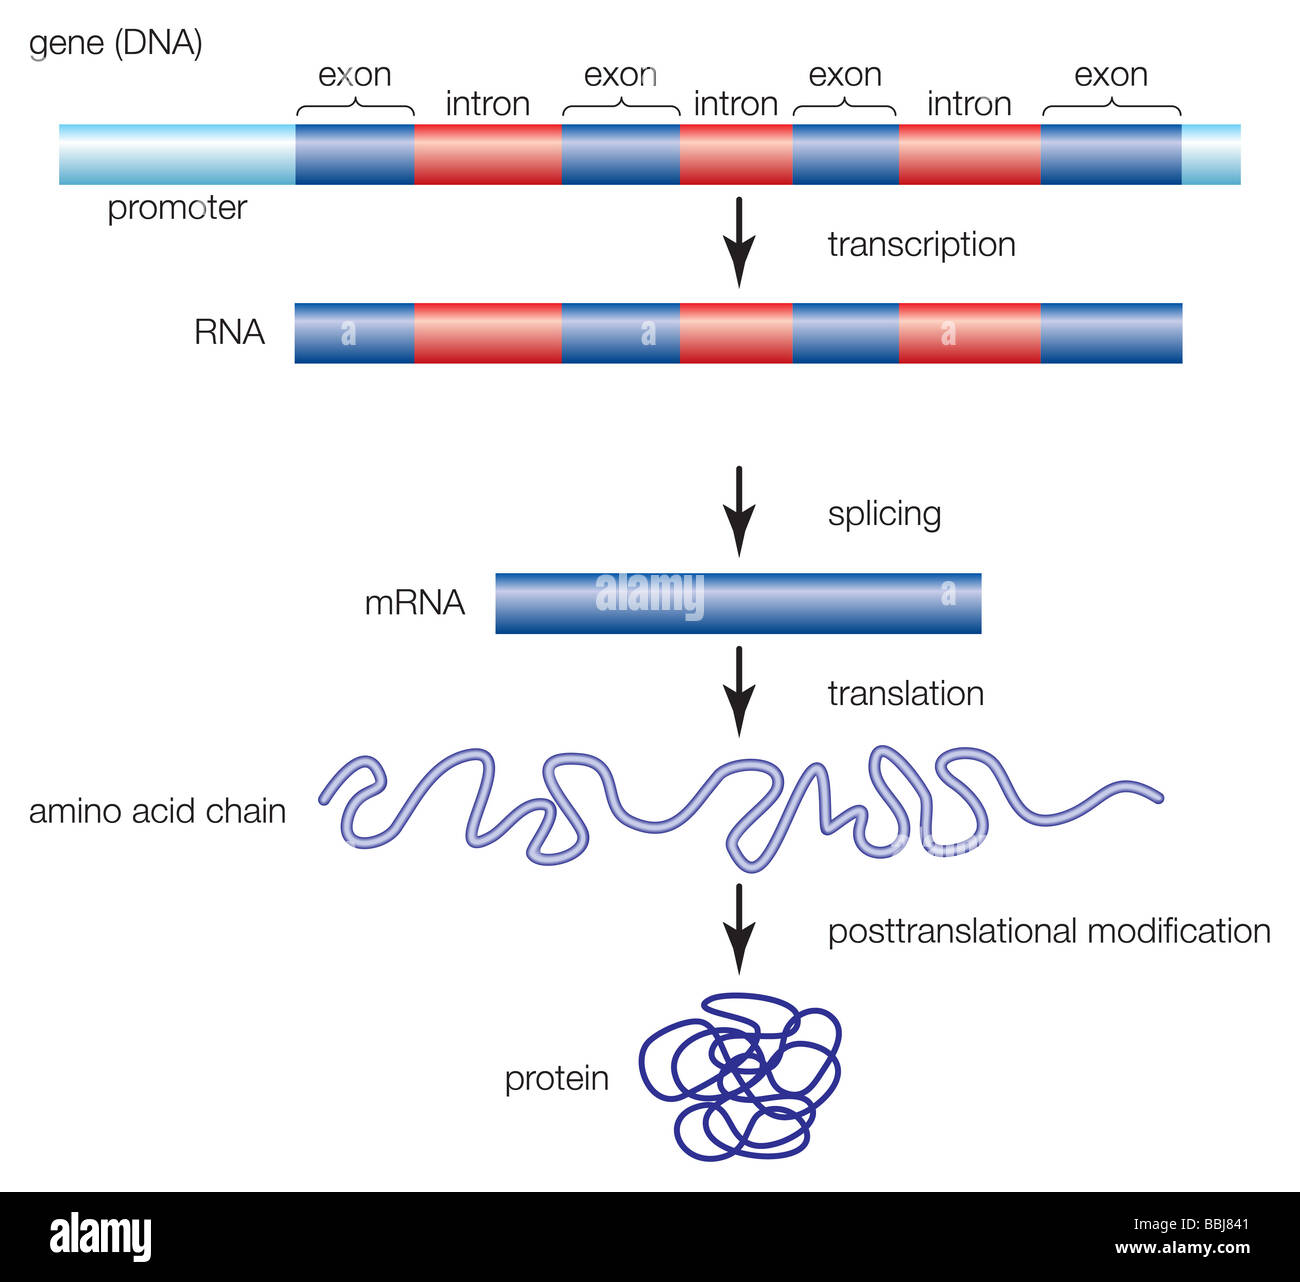 The process by which a gene is transcribed from DNA to RNA, and eventually forms a protein molecule. - Stock Image